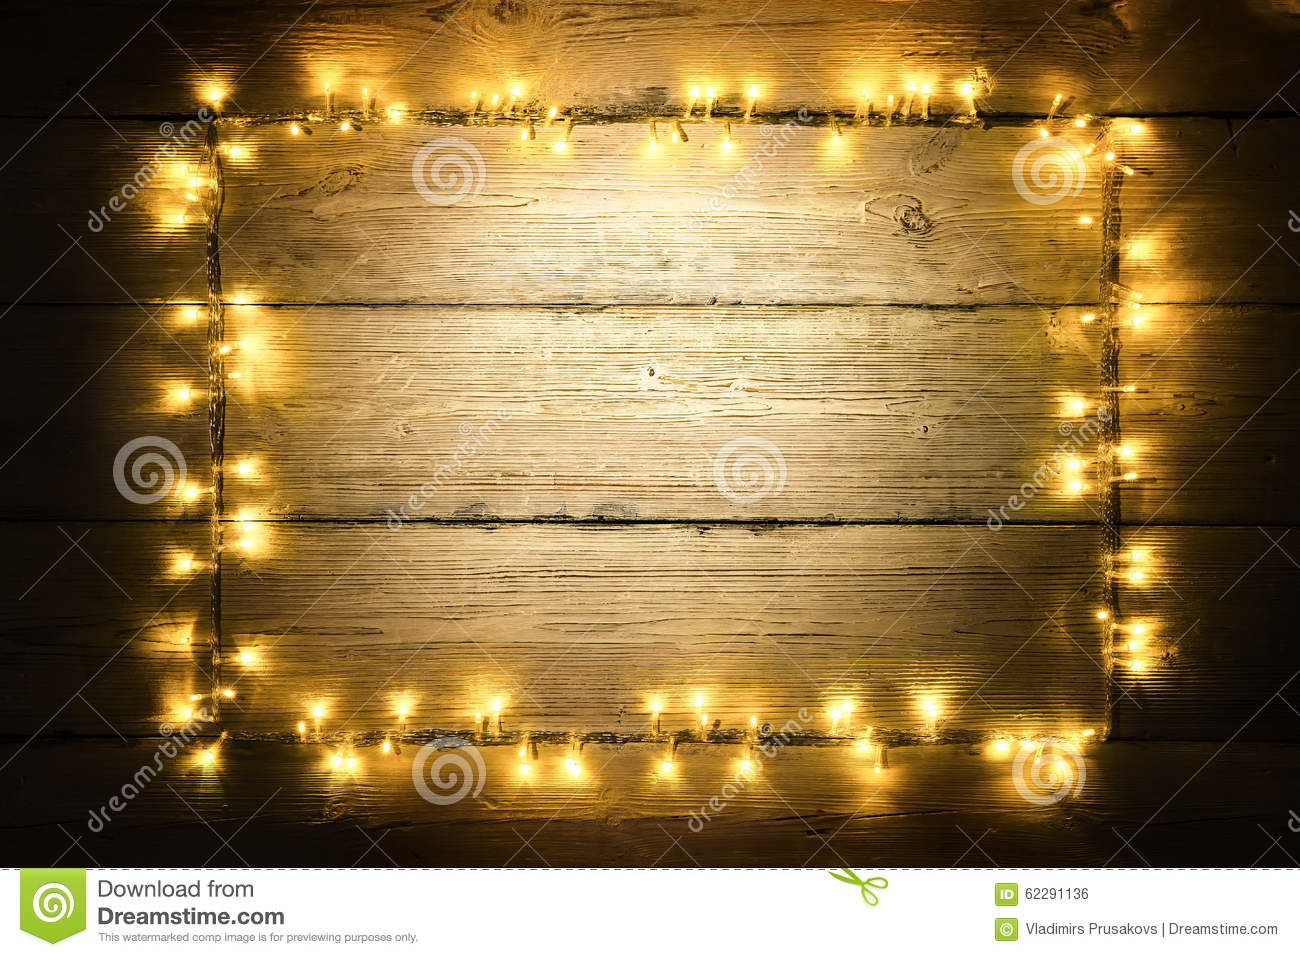 Garland Lights Wood Frame Lighting Wooden Planks Sign